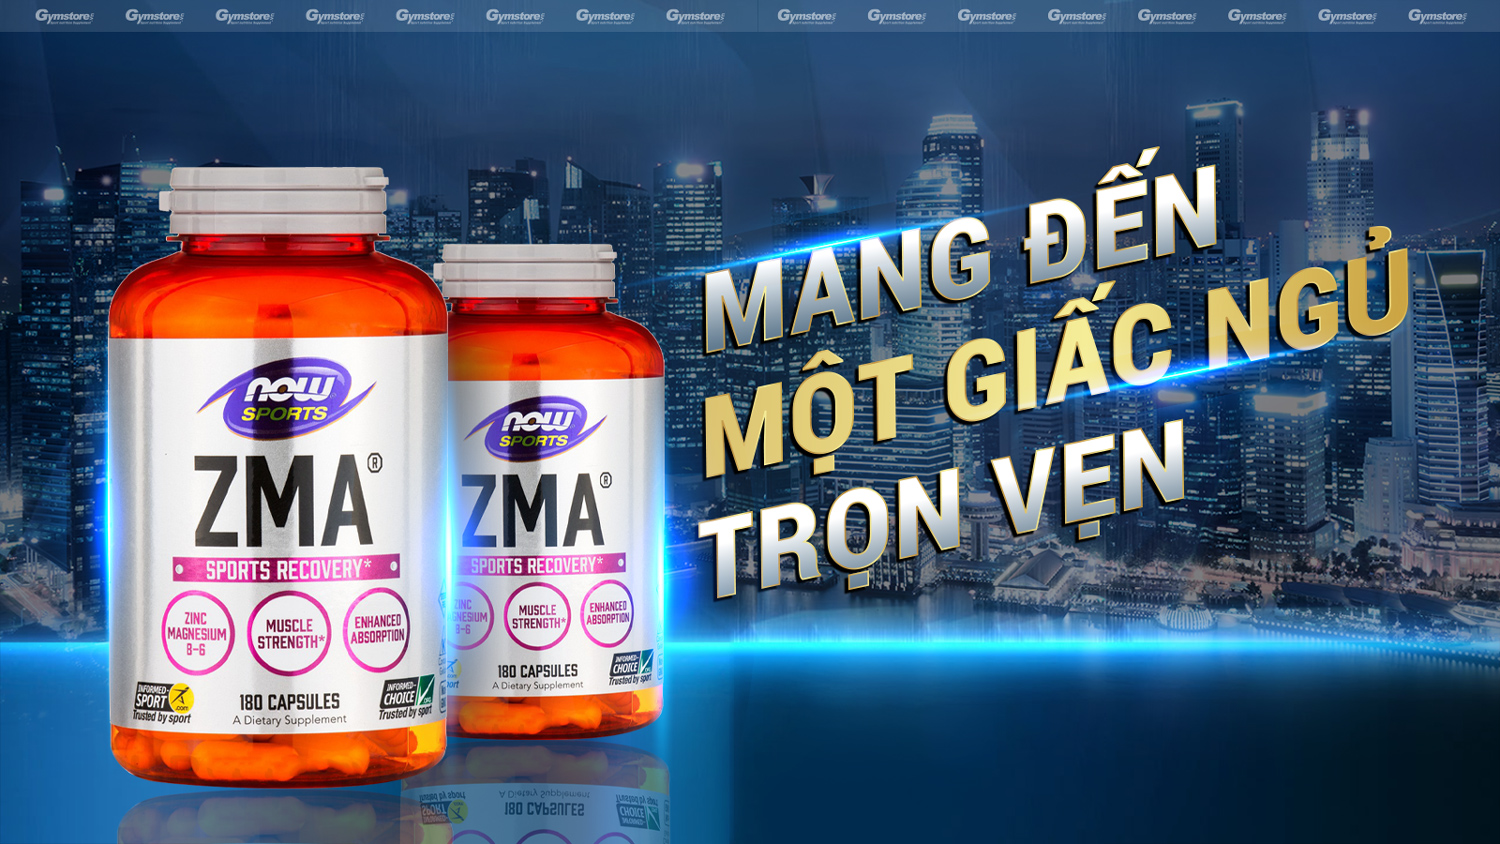 Now-ZMA-hỗ-trợ-giấc-ngủ-gymstore